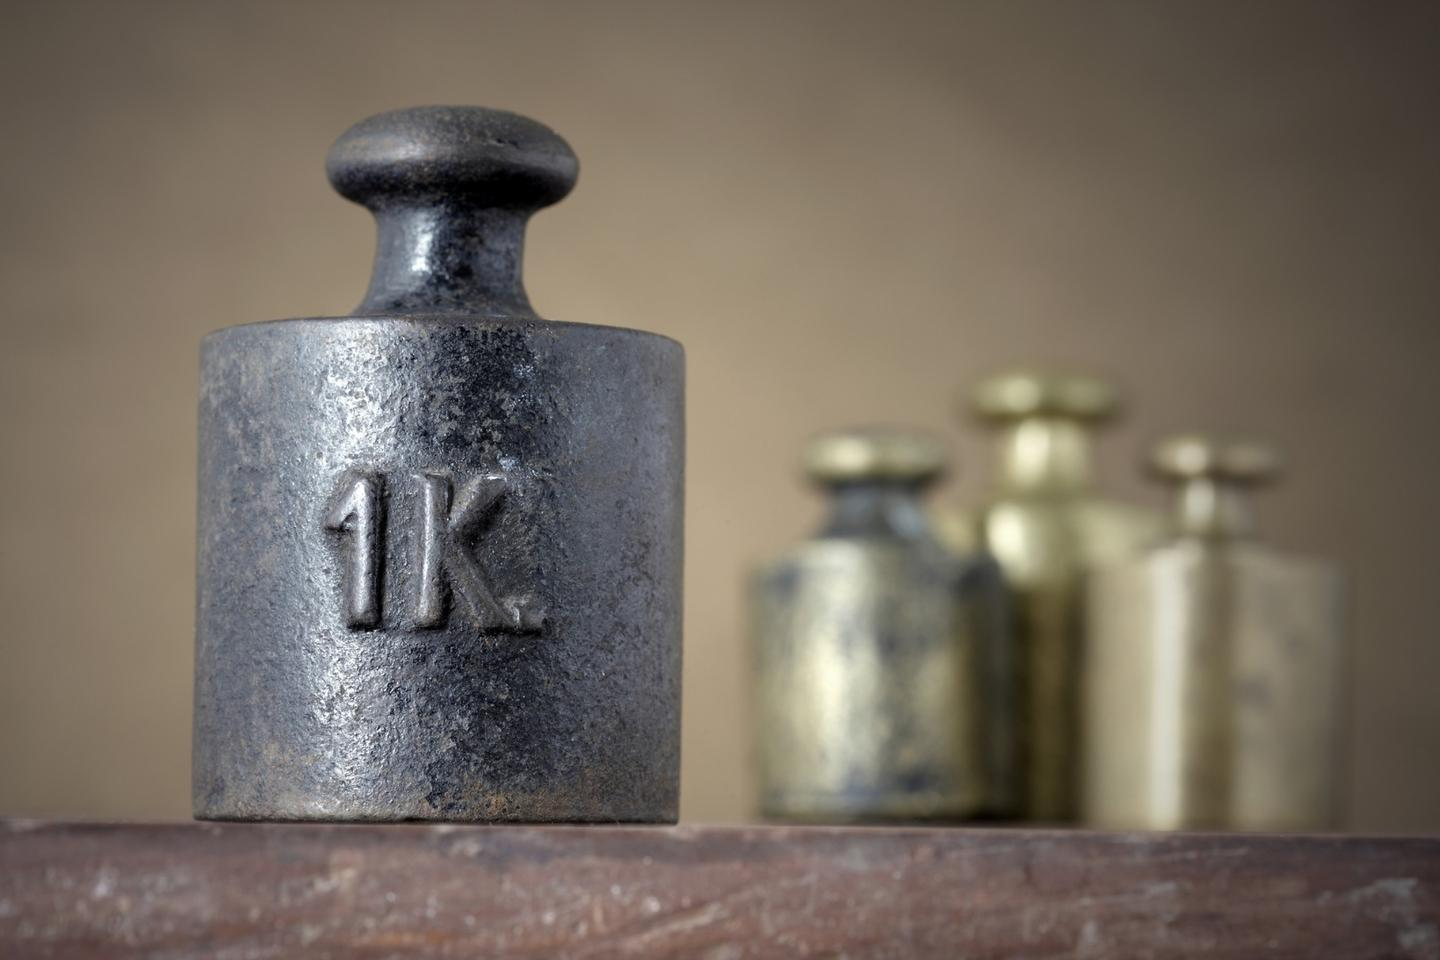 The official definition of a kilogram – as well as a few other SI measurements – is up for a vote this week